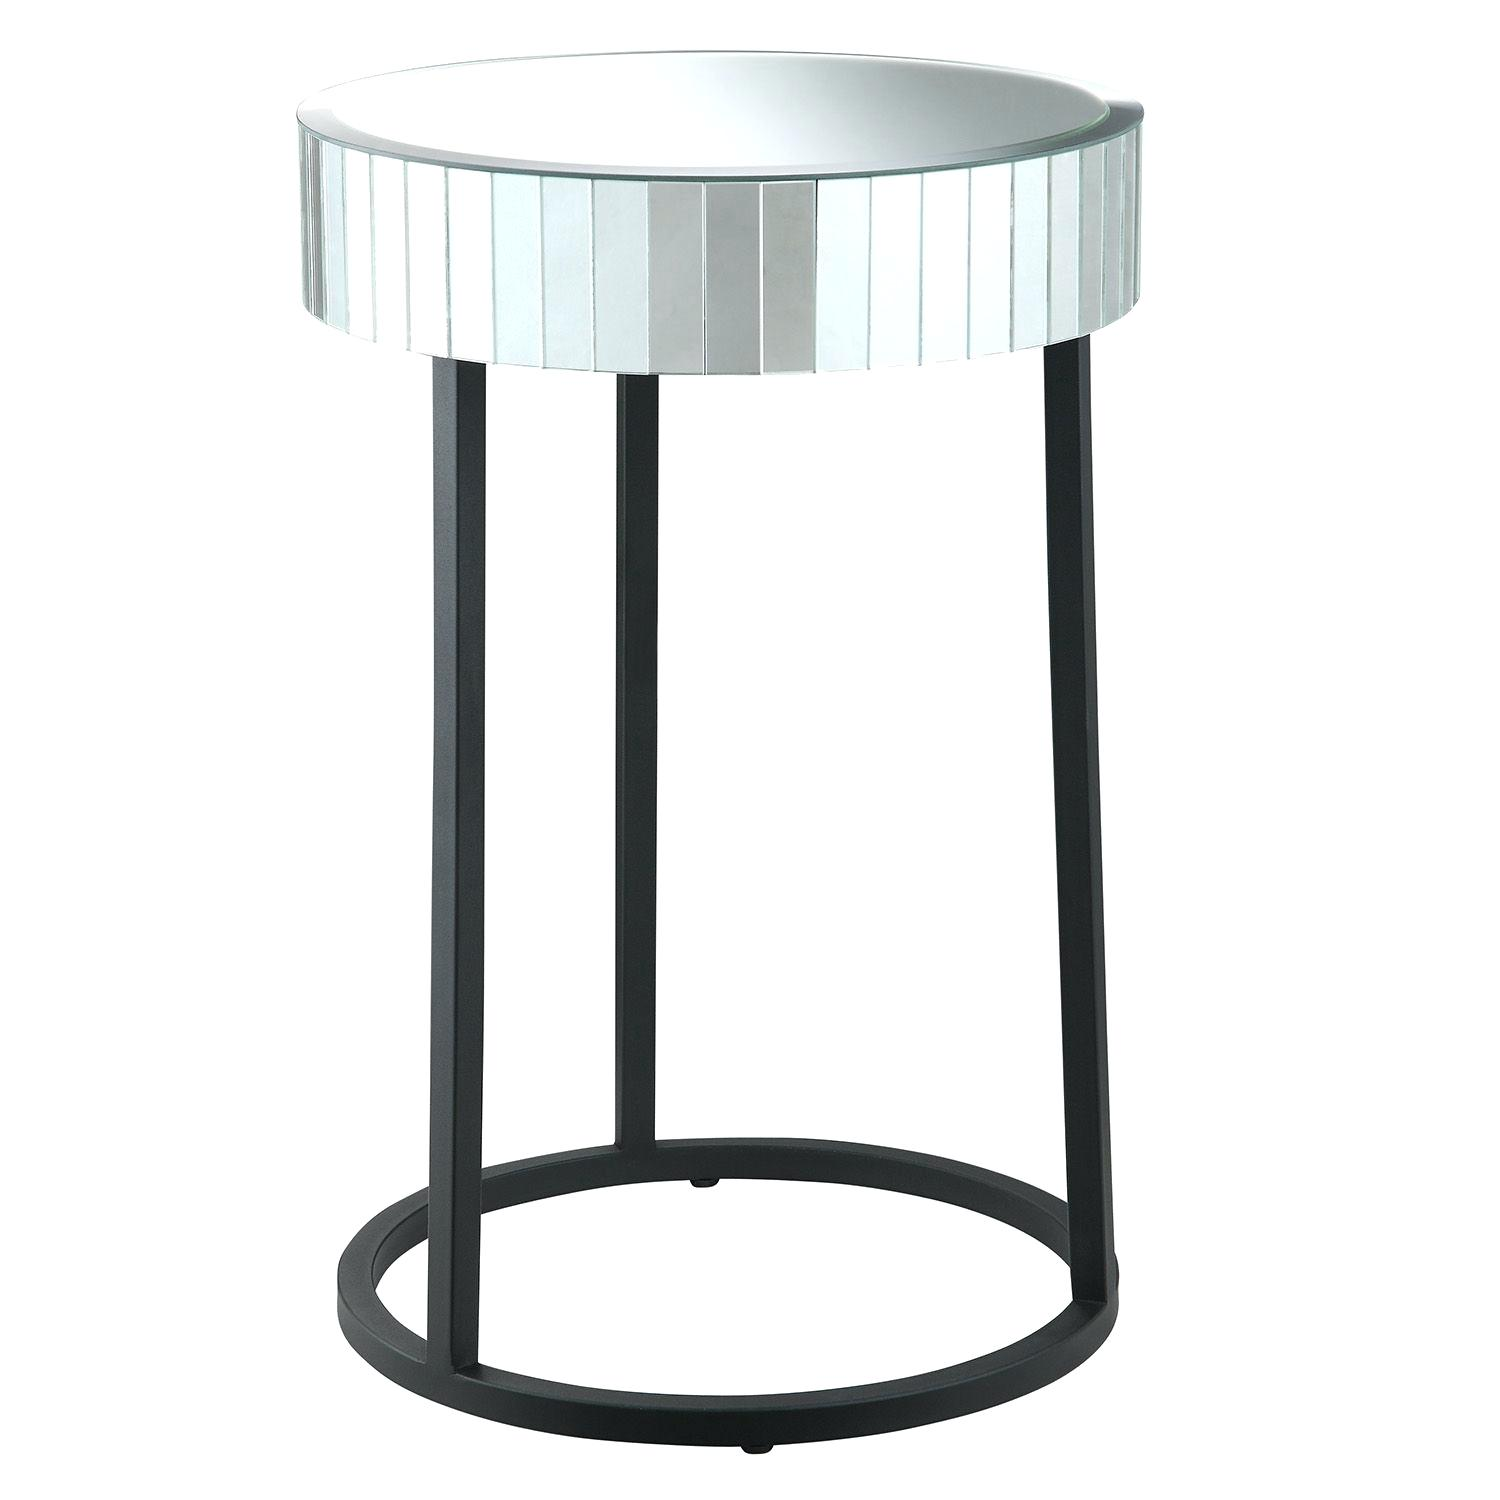 round mirror accent table pier tables mosaic lavorochogan info threshold teal mid century modern dining chairs half moon glass circular side west elm coupon code barn door designs